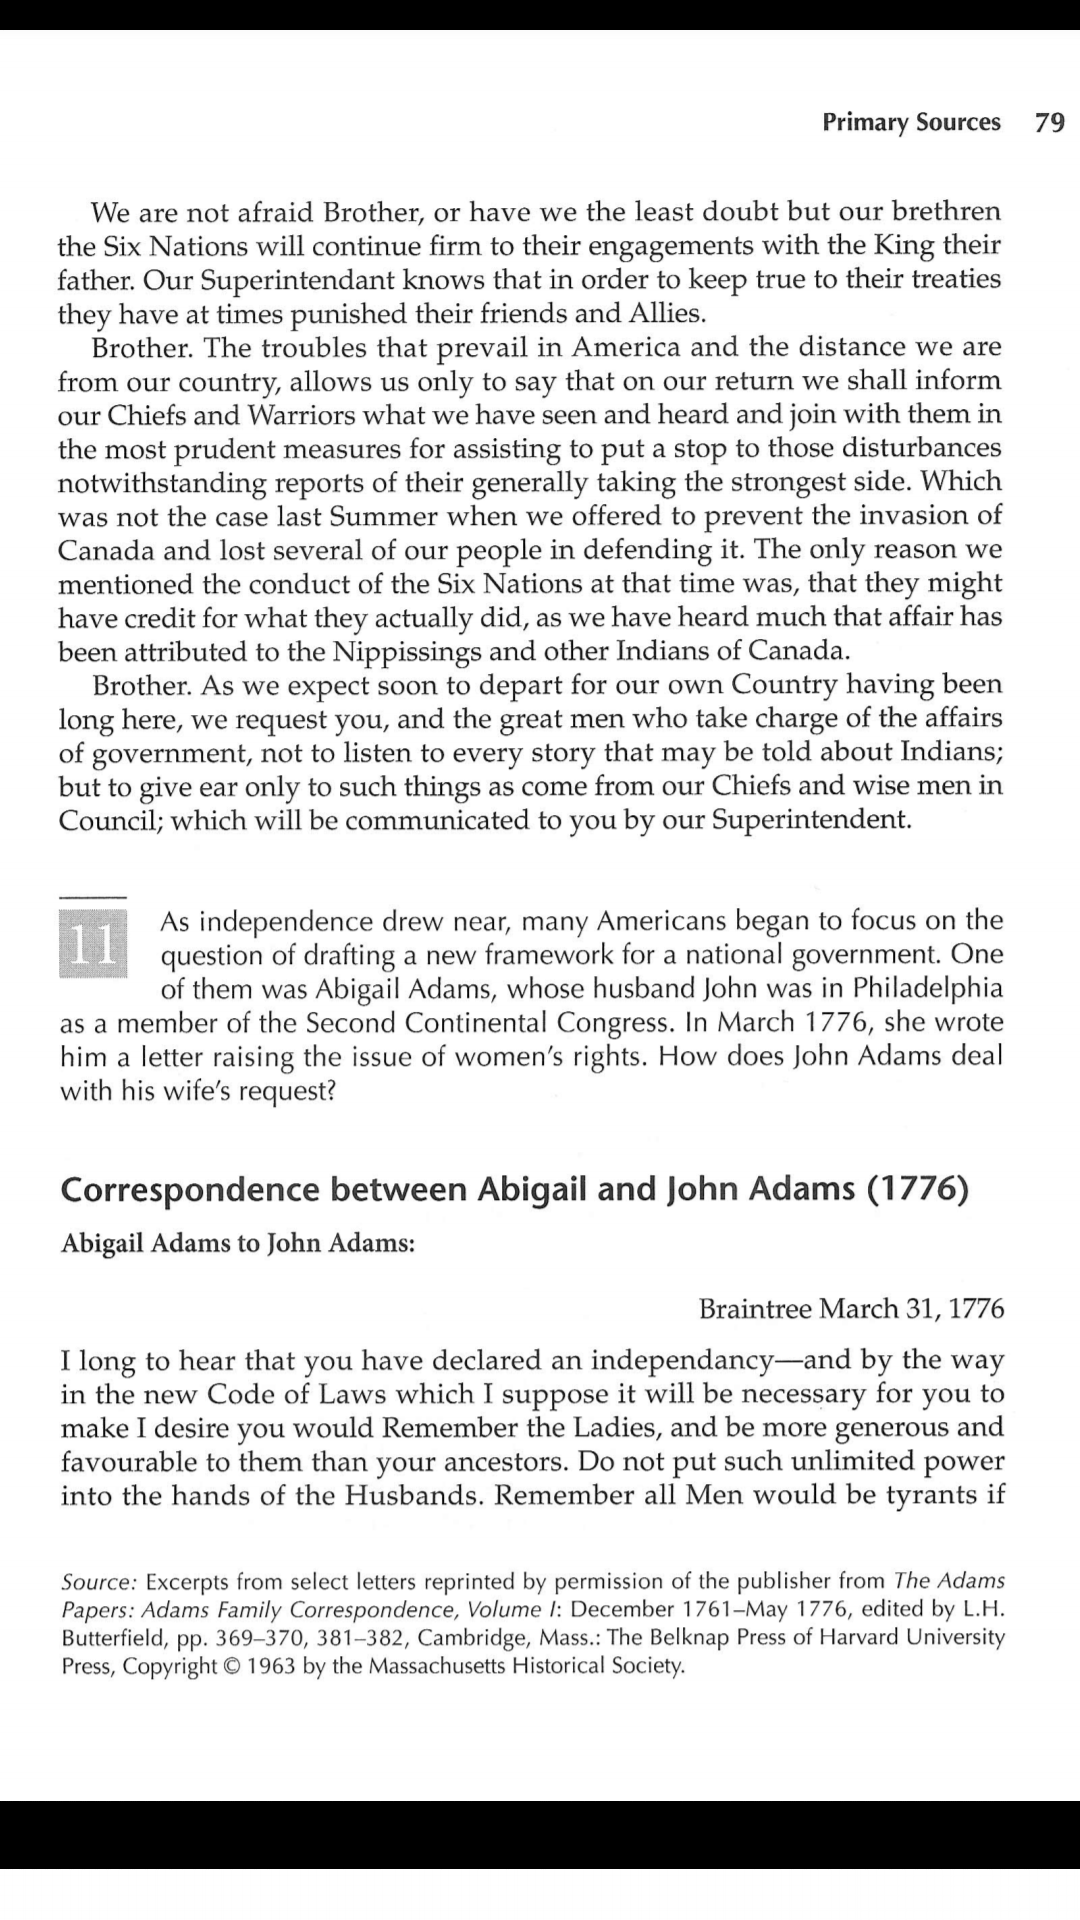 john and abigail adams essay example The letters of john and abigail adams are a refreshing eye-opener in contrast to the stereotypes and expectations of their day after reading the correspondence of john and abigail, a new light is brought upon their relationship and it reveals not only a loving and committed couple, but lets the reader view through a window in an important.